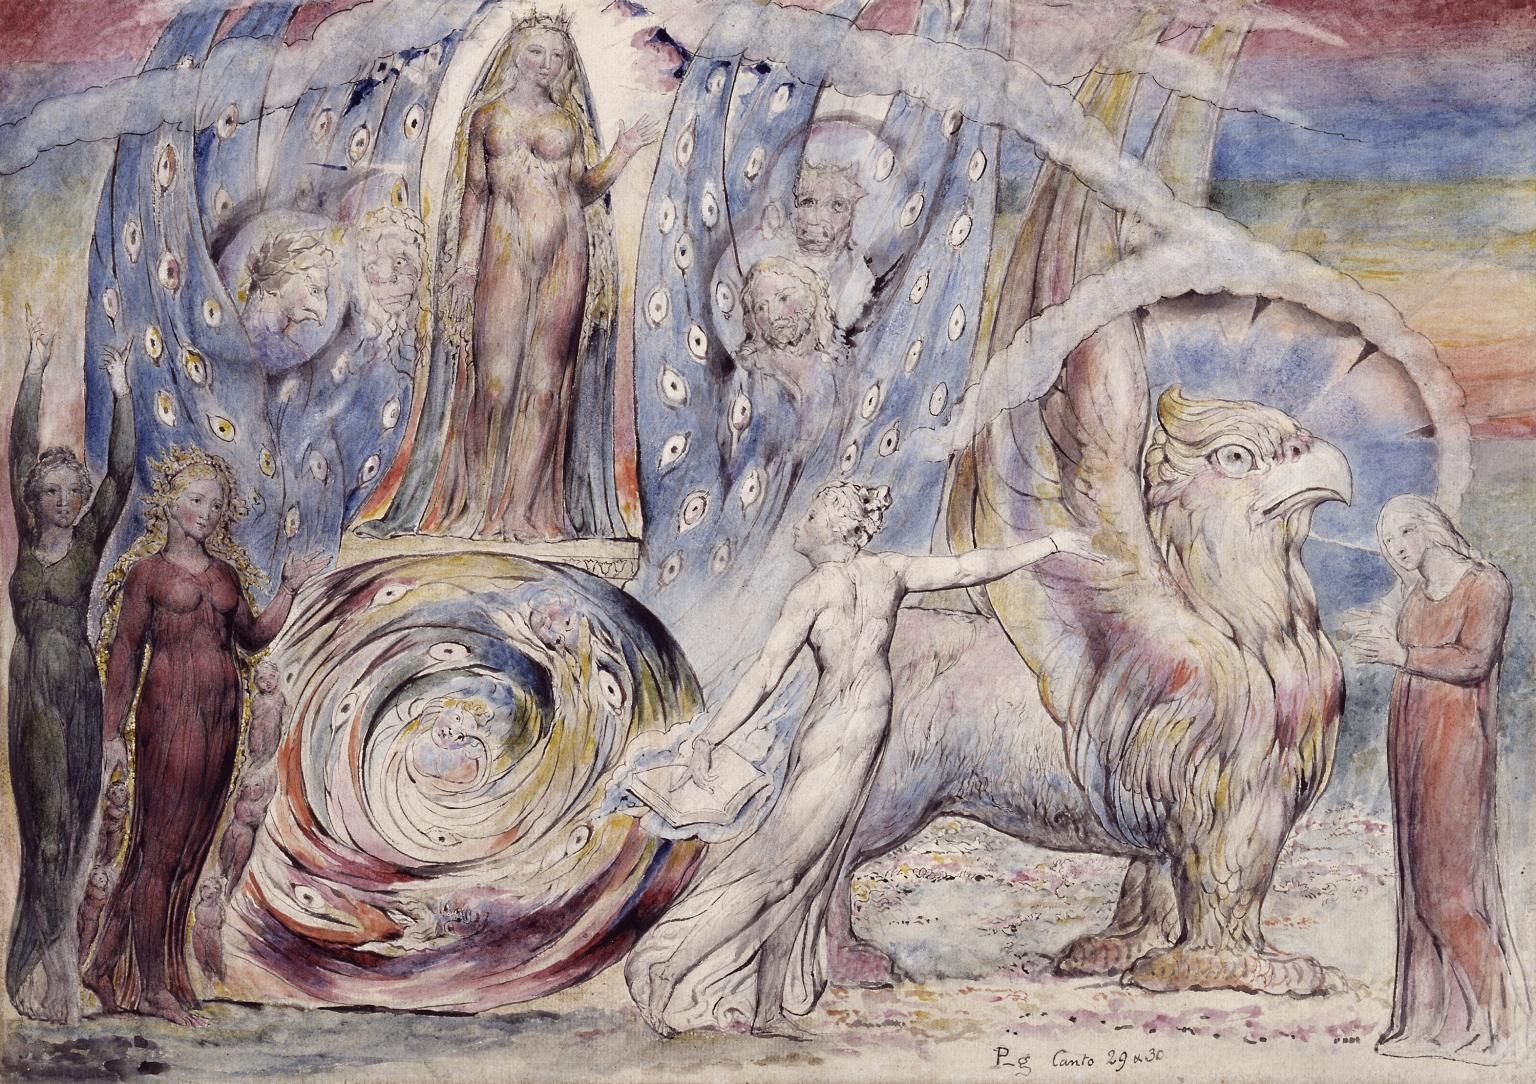 """Beatrice Addressing Dante from the Car"" by Wm Blake"